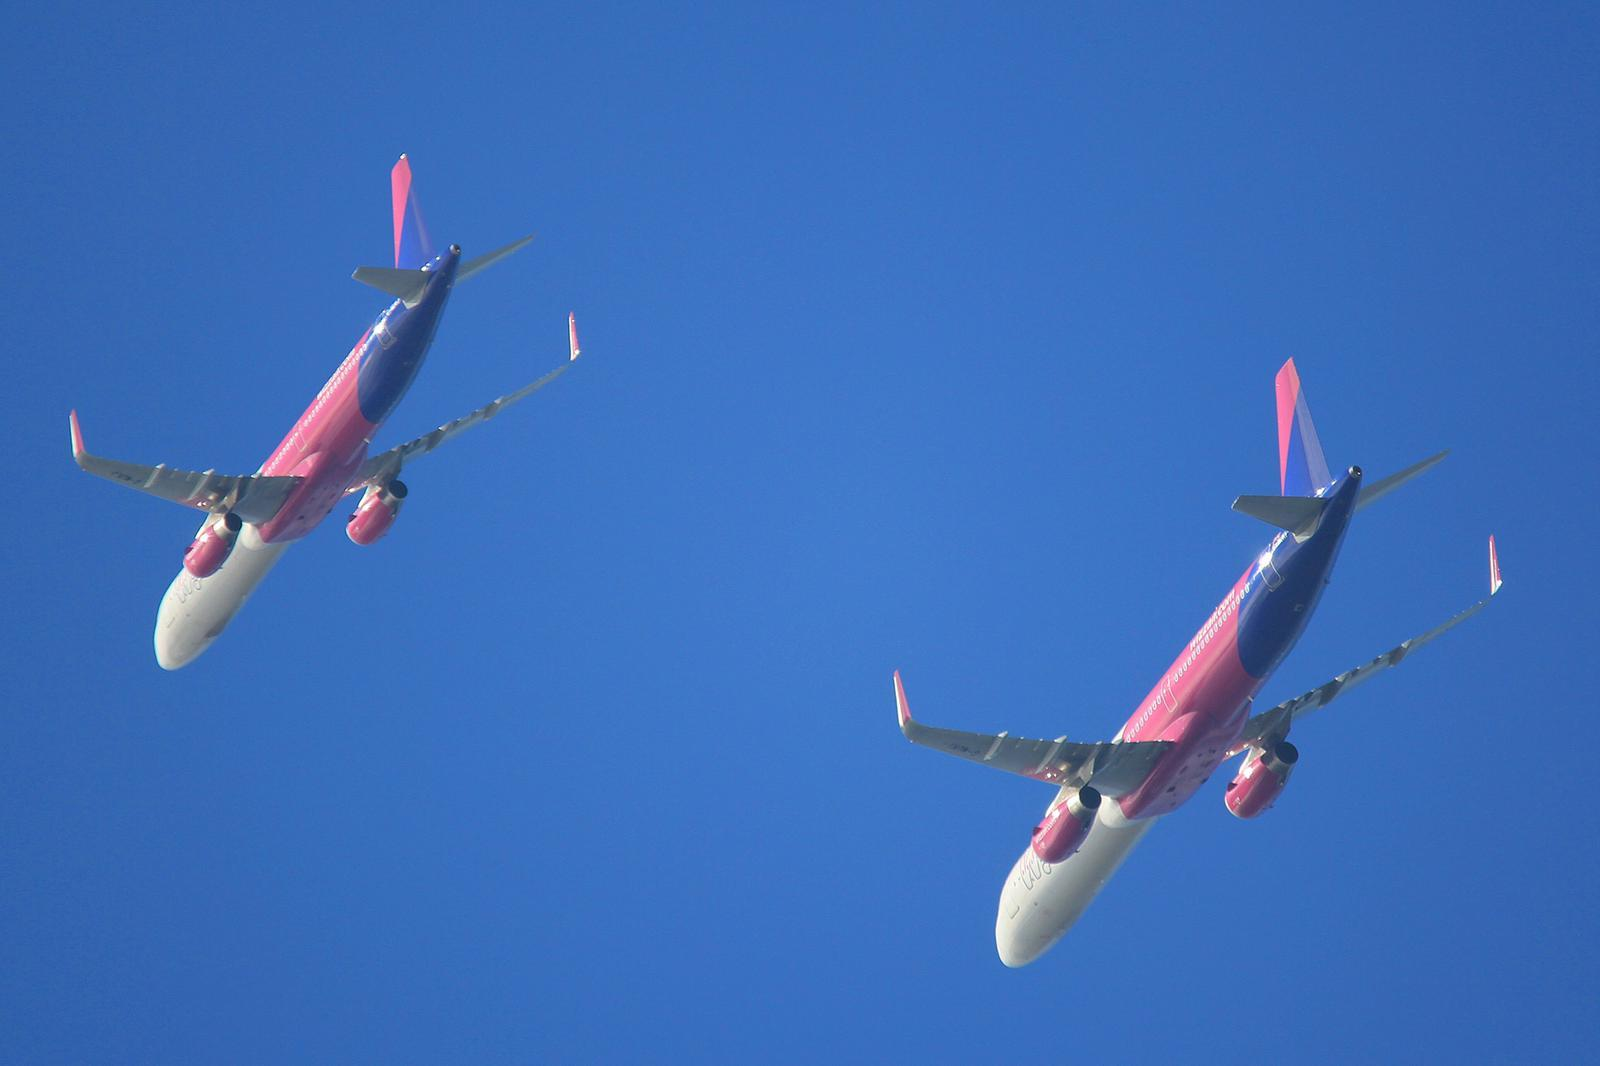 Wizz Air's four-plane flyover at Newport, Cardiff and Swansea